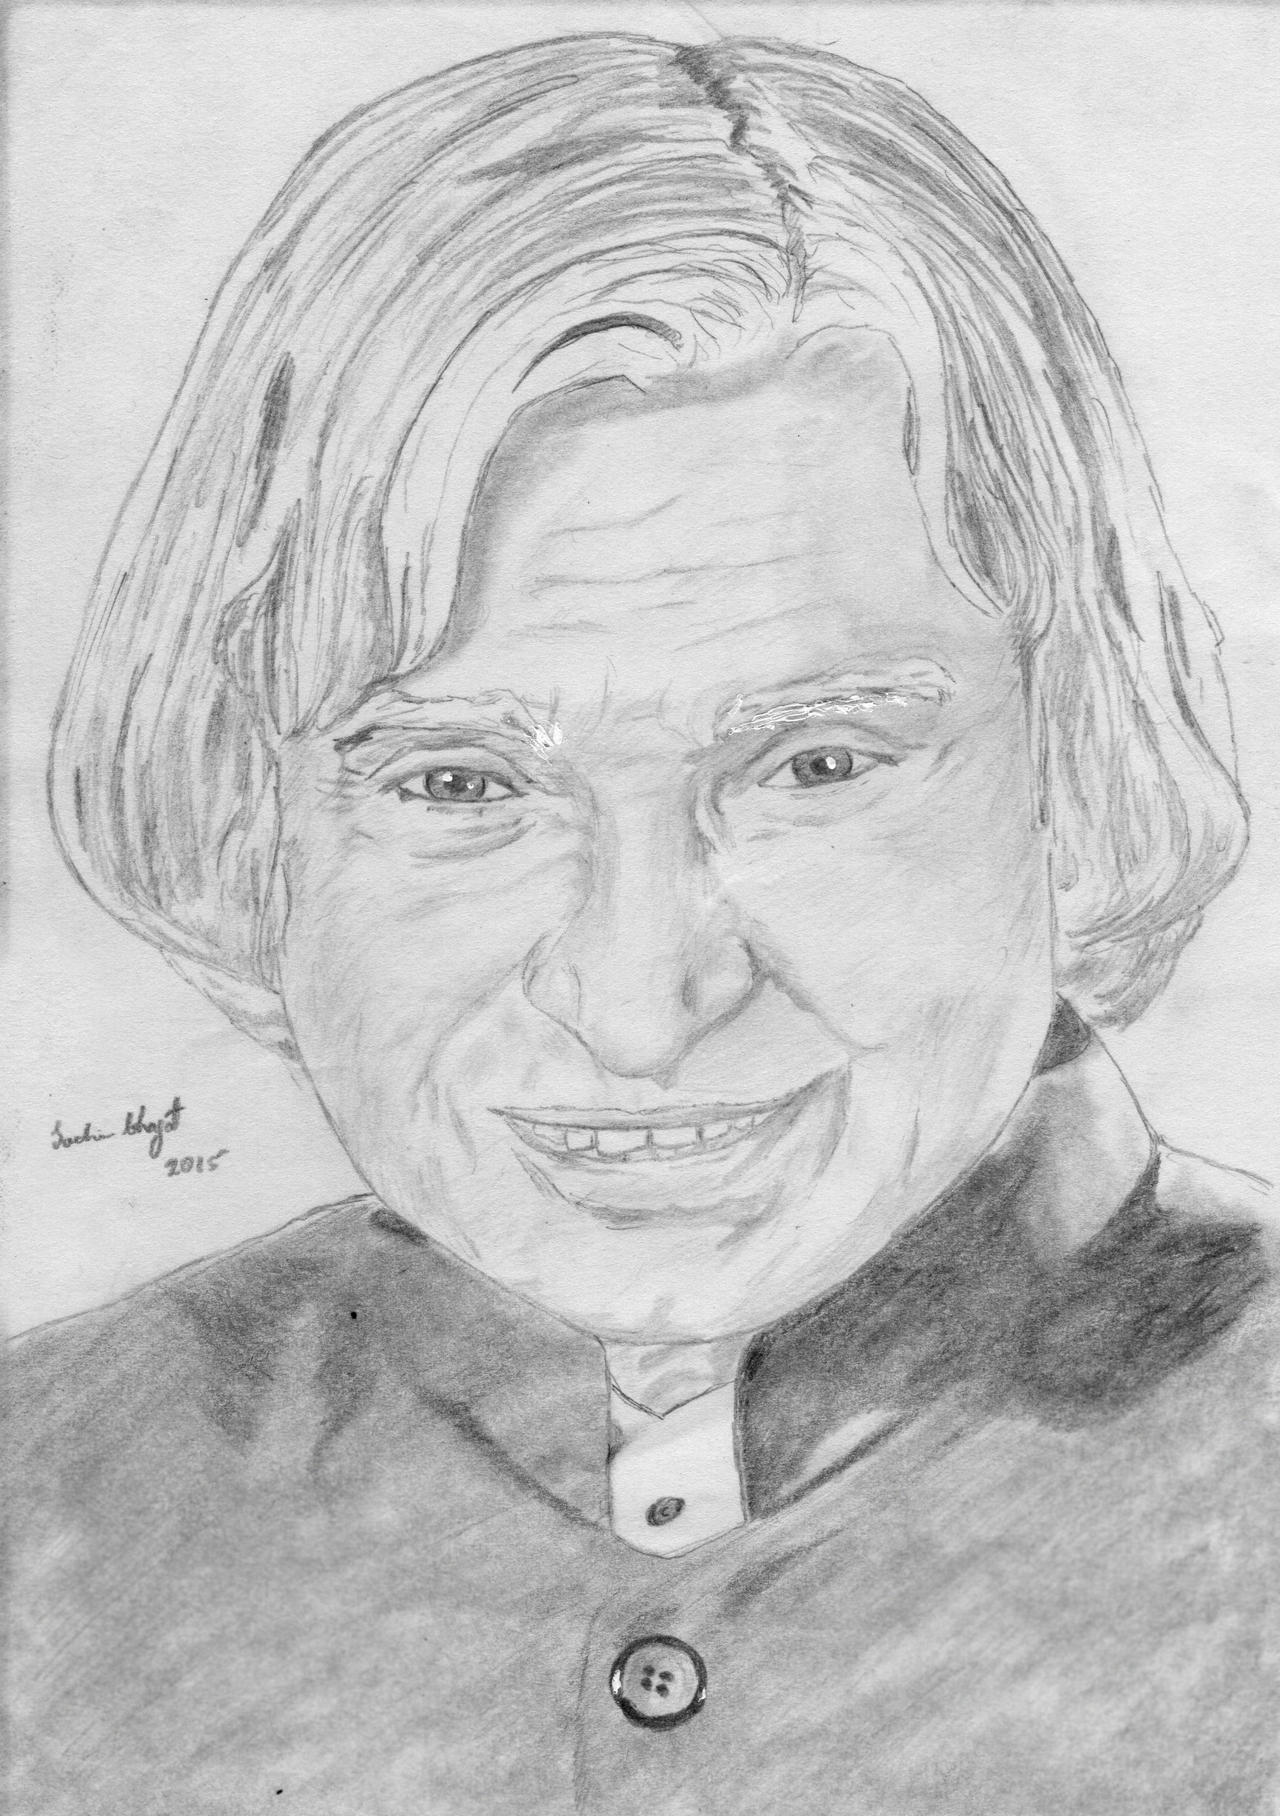 apj abdul kalam biography in hindi pdf free download